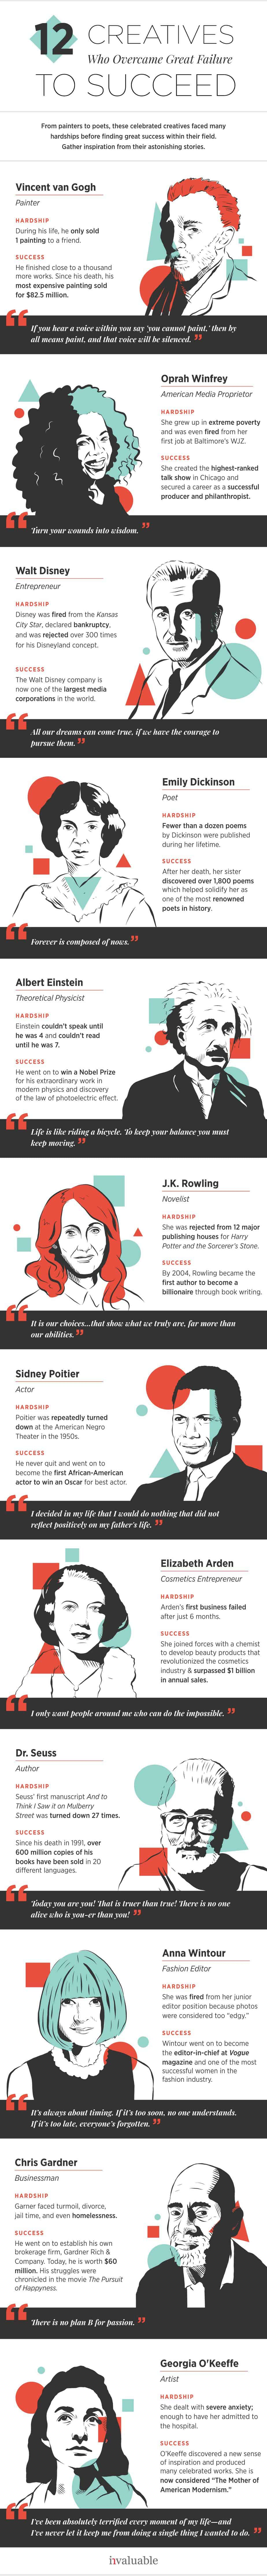 12 Creatives Who Overcame Great Failure to Succeed